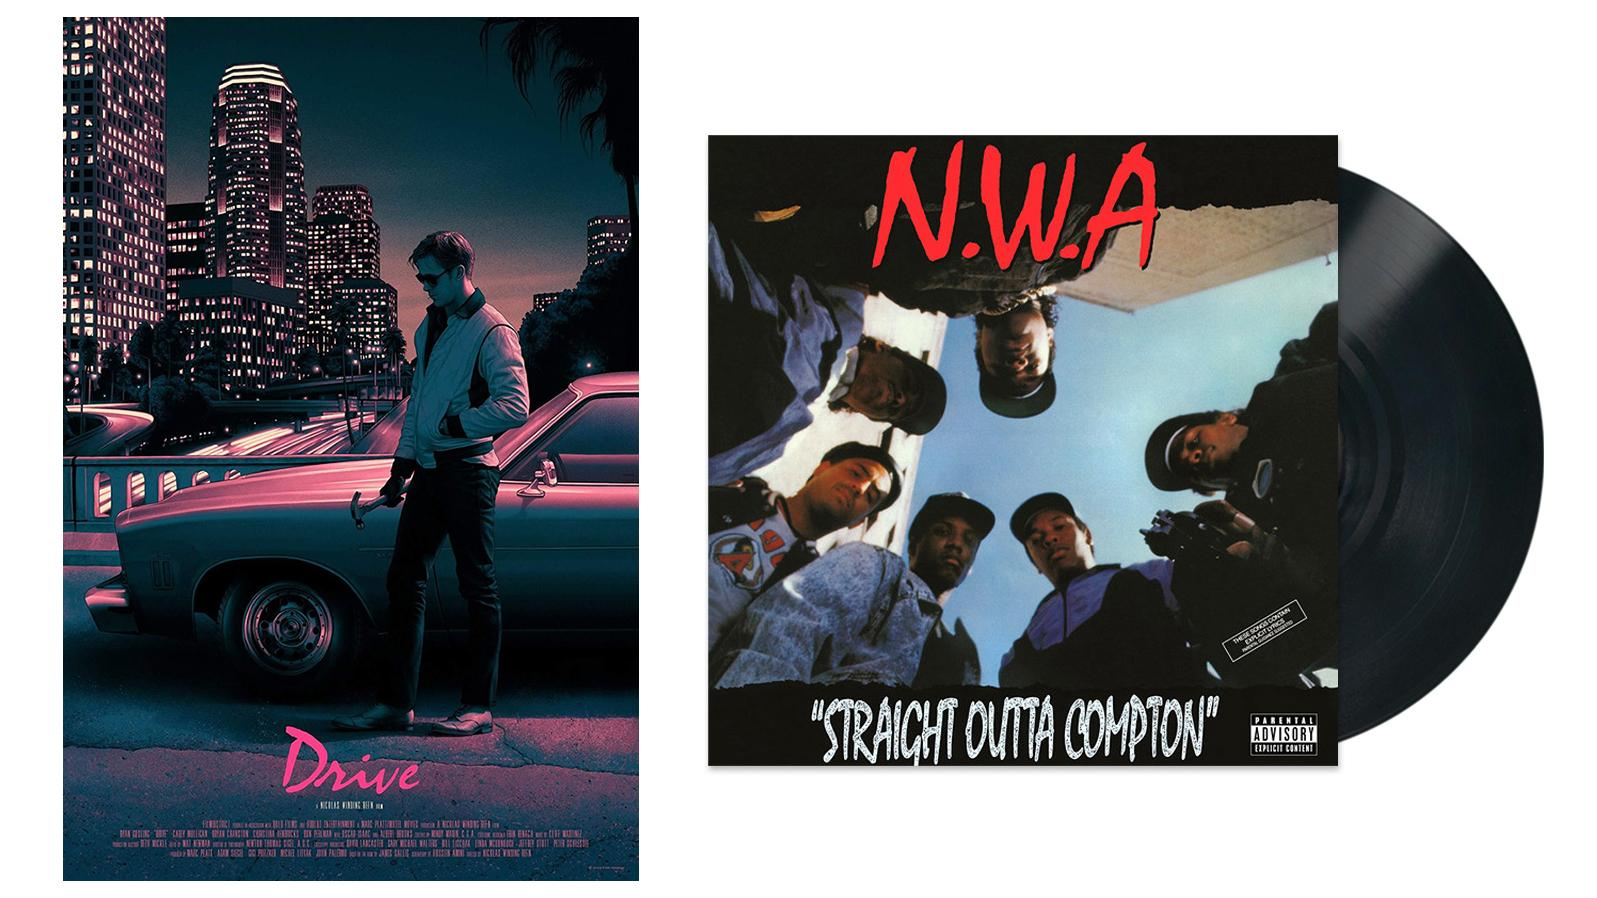 Mistral used on Drive poster and Straight Outta Compton album cover